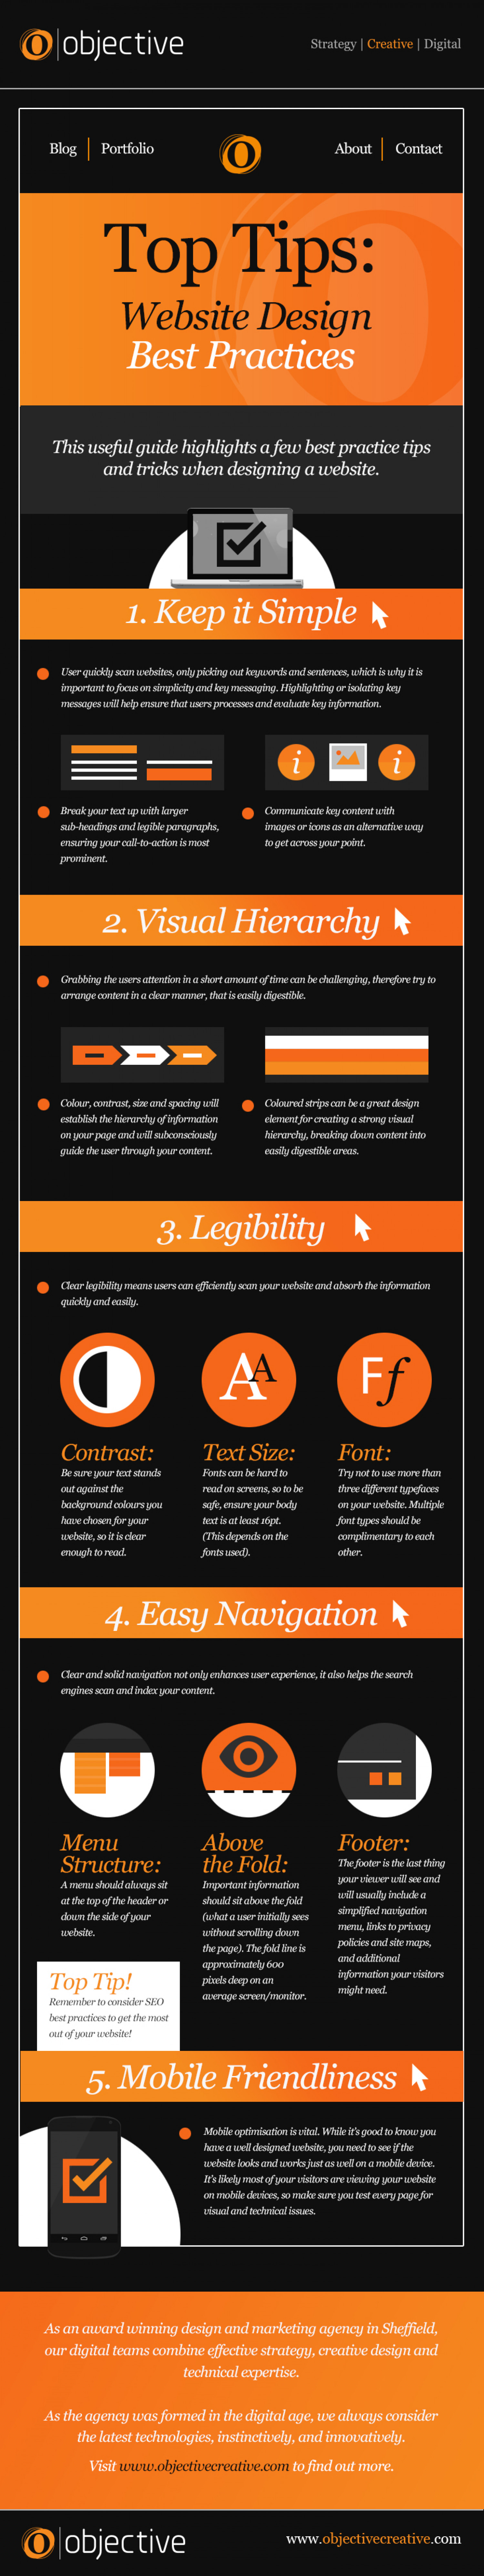 Top Tips: Website Design Best Practices Infographic